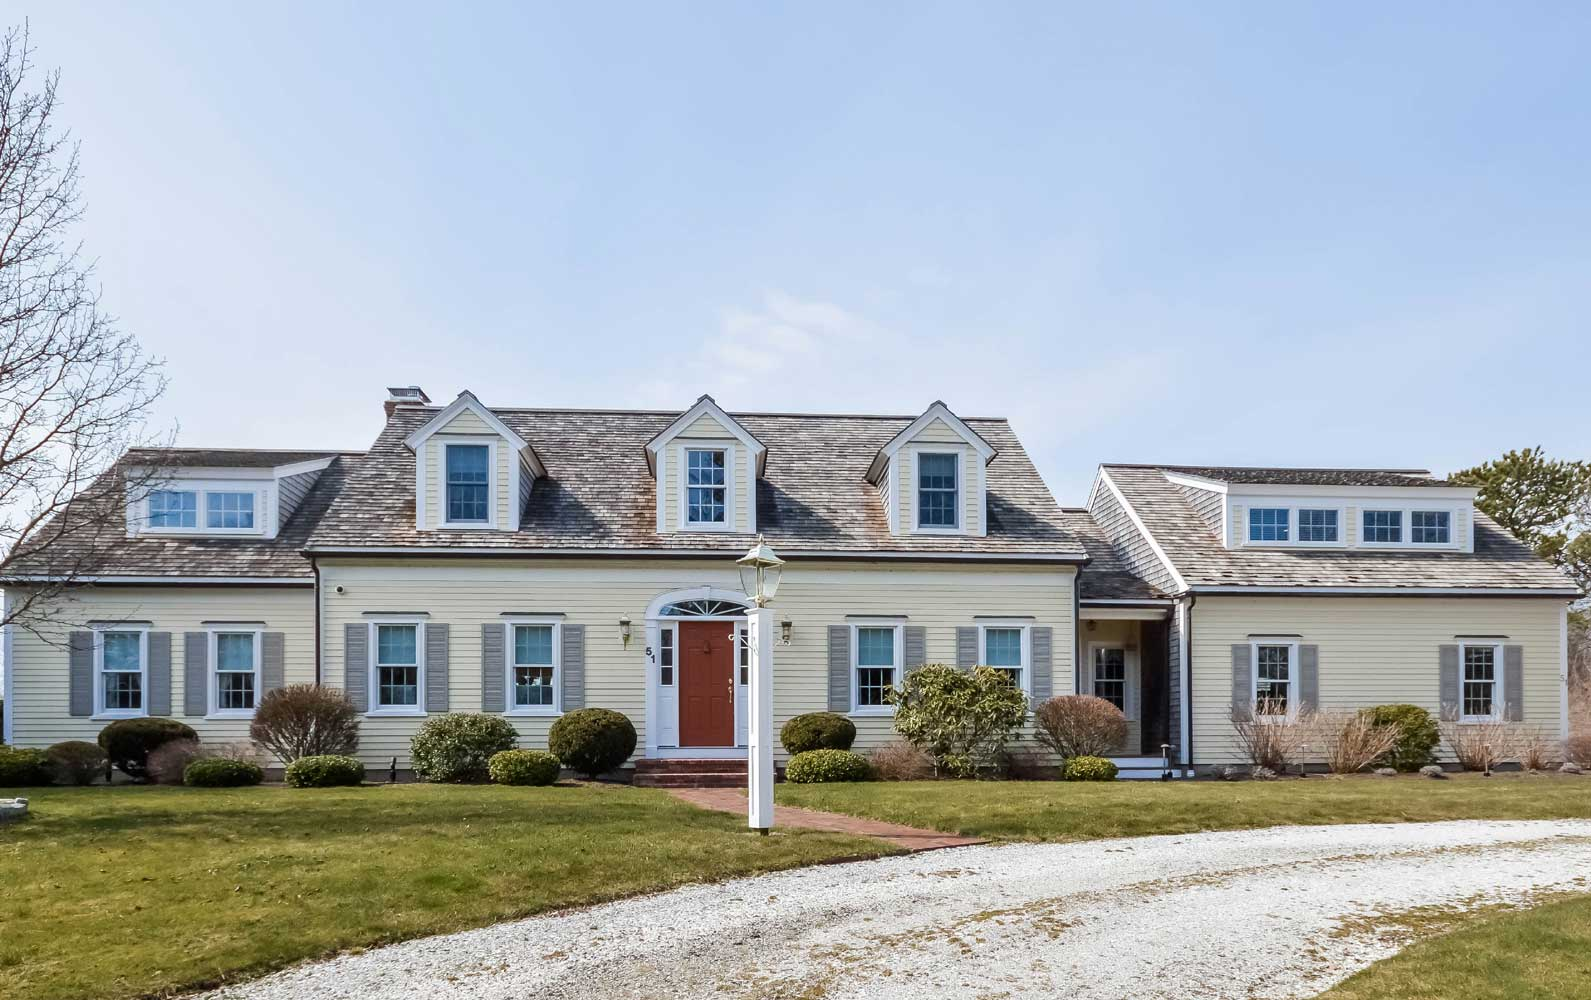 <b>Chatham, Massachusetts</b><br/><i>5 Bedrooms, 3,328 sq. ft.</i><br/>Cape Cod residence with water views